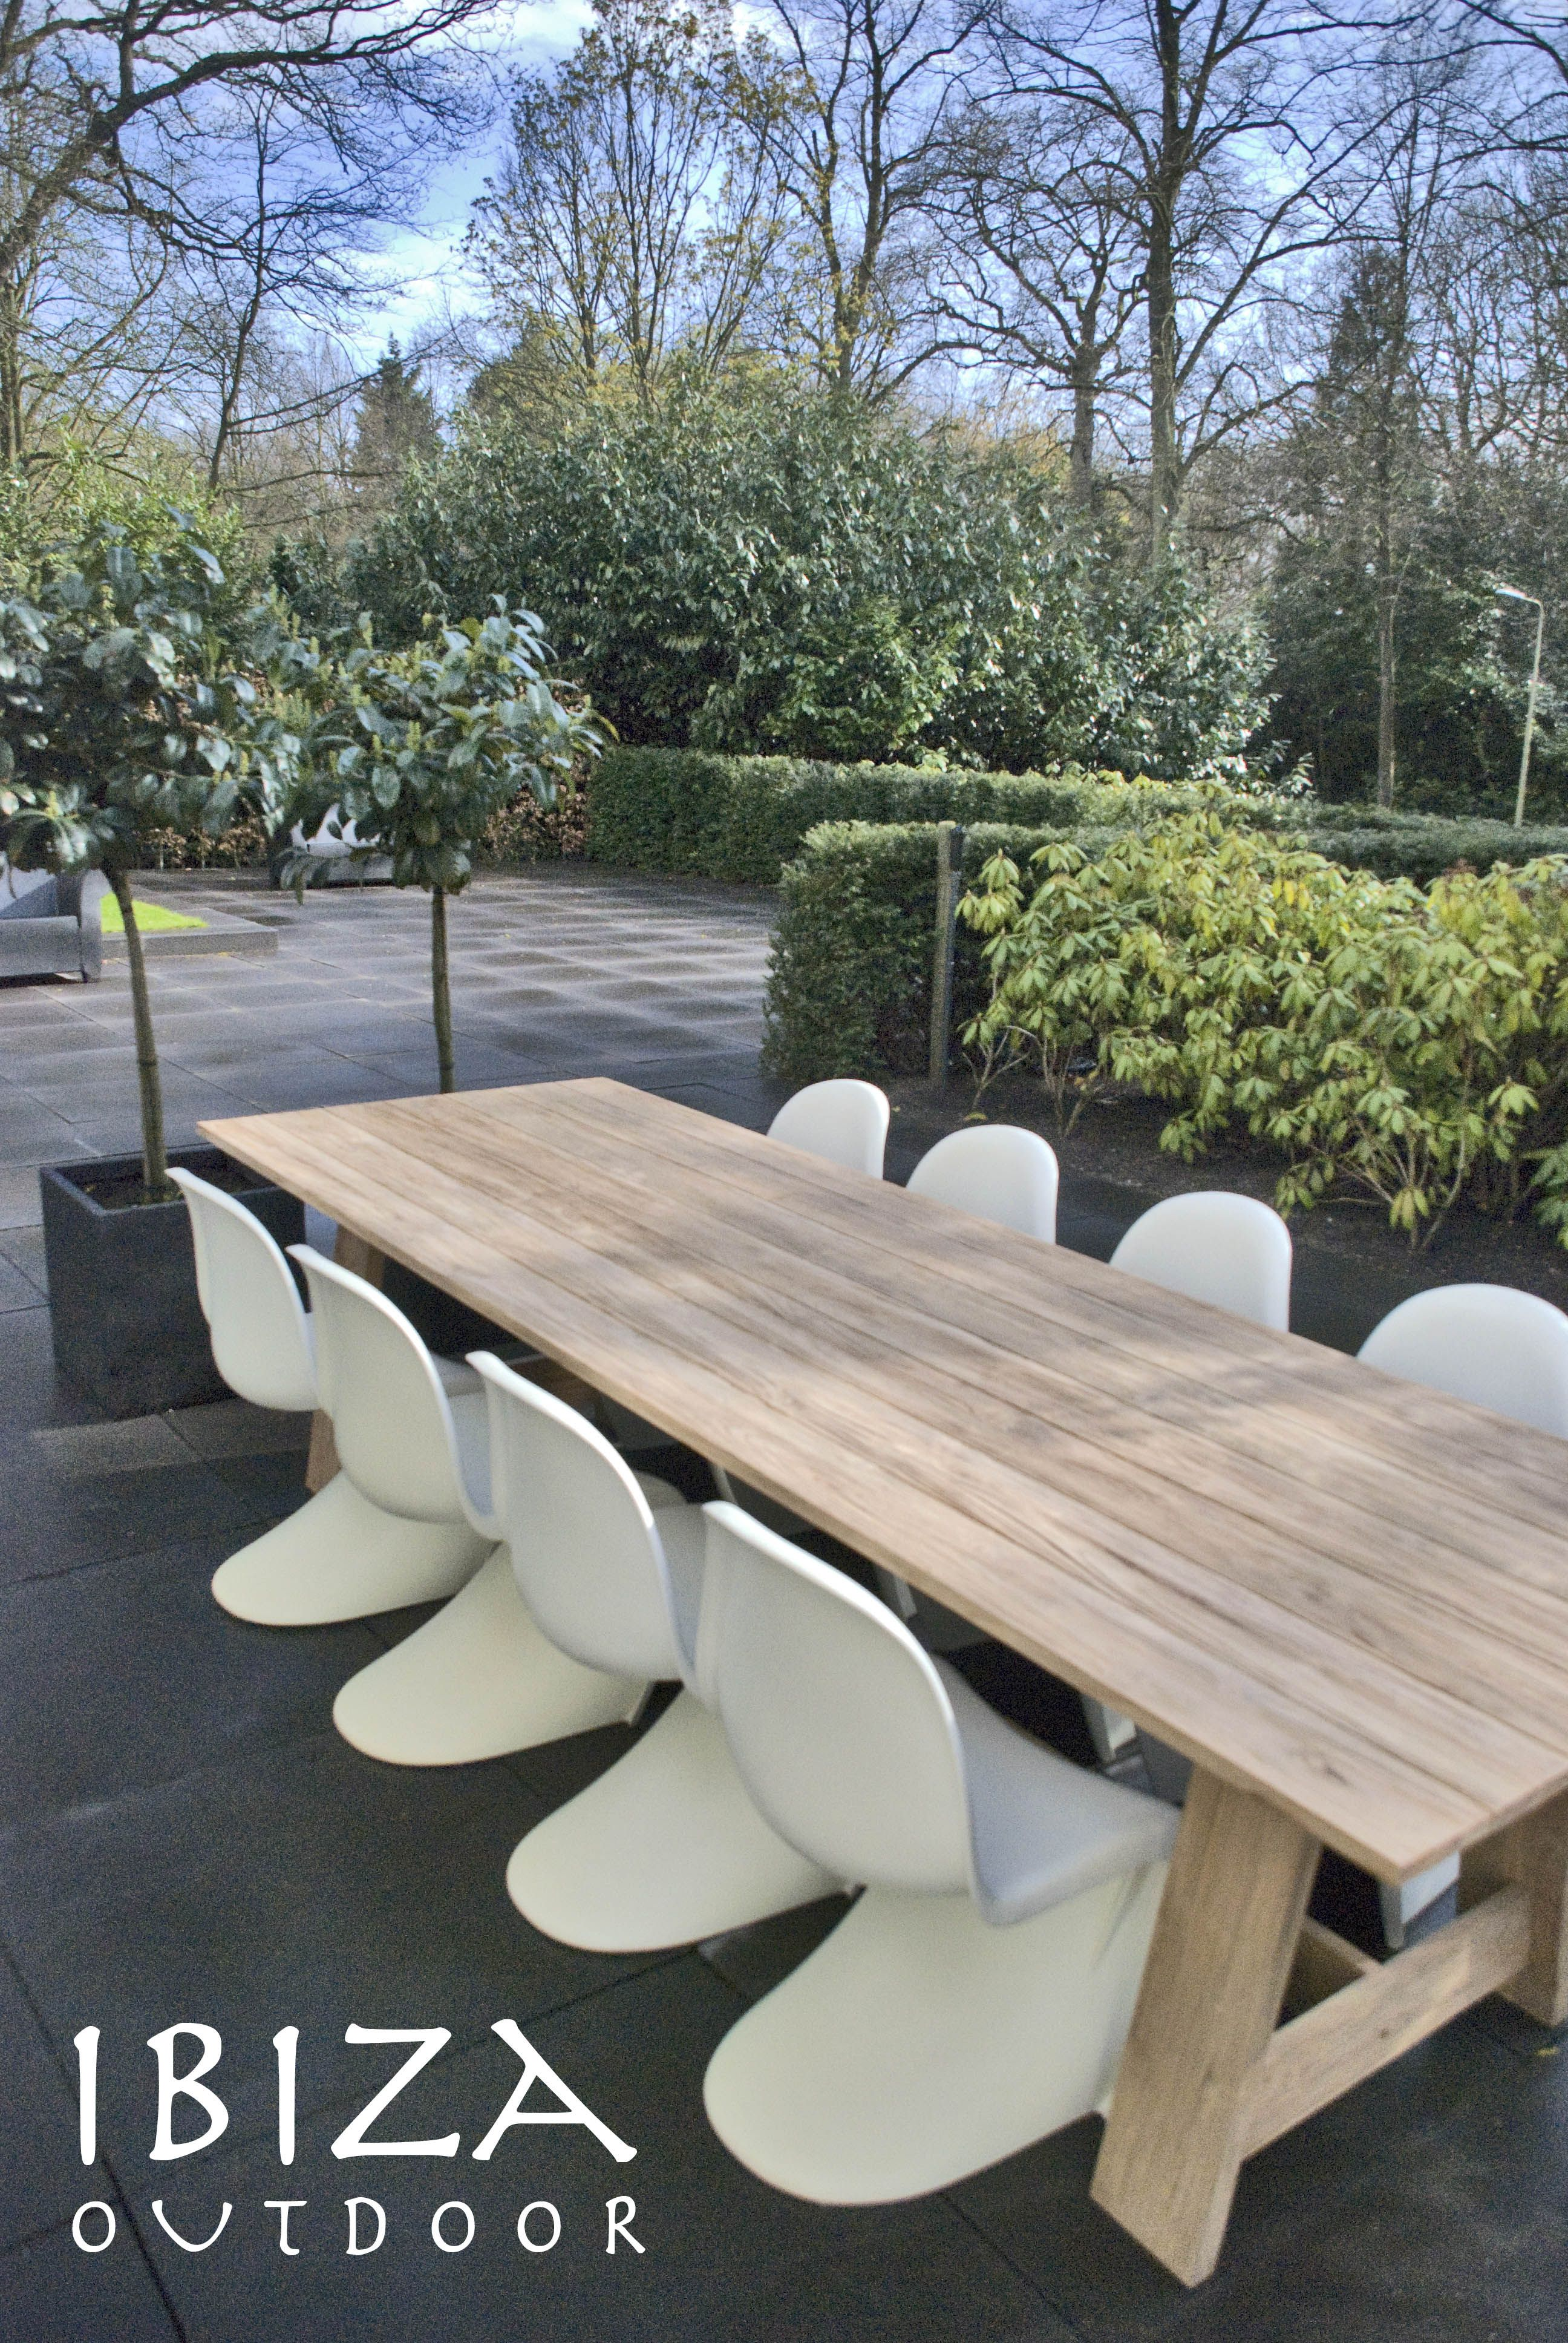 1194 900 Euro 300x100 Grove Teaktafel Our New Ibiza Outdoor Rustic Teak Tables Have Arrived Have Different Size Teak Table Outdoor Teak Outdoor Teak Table